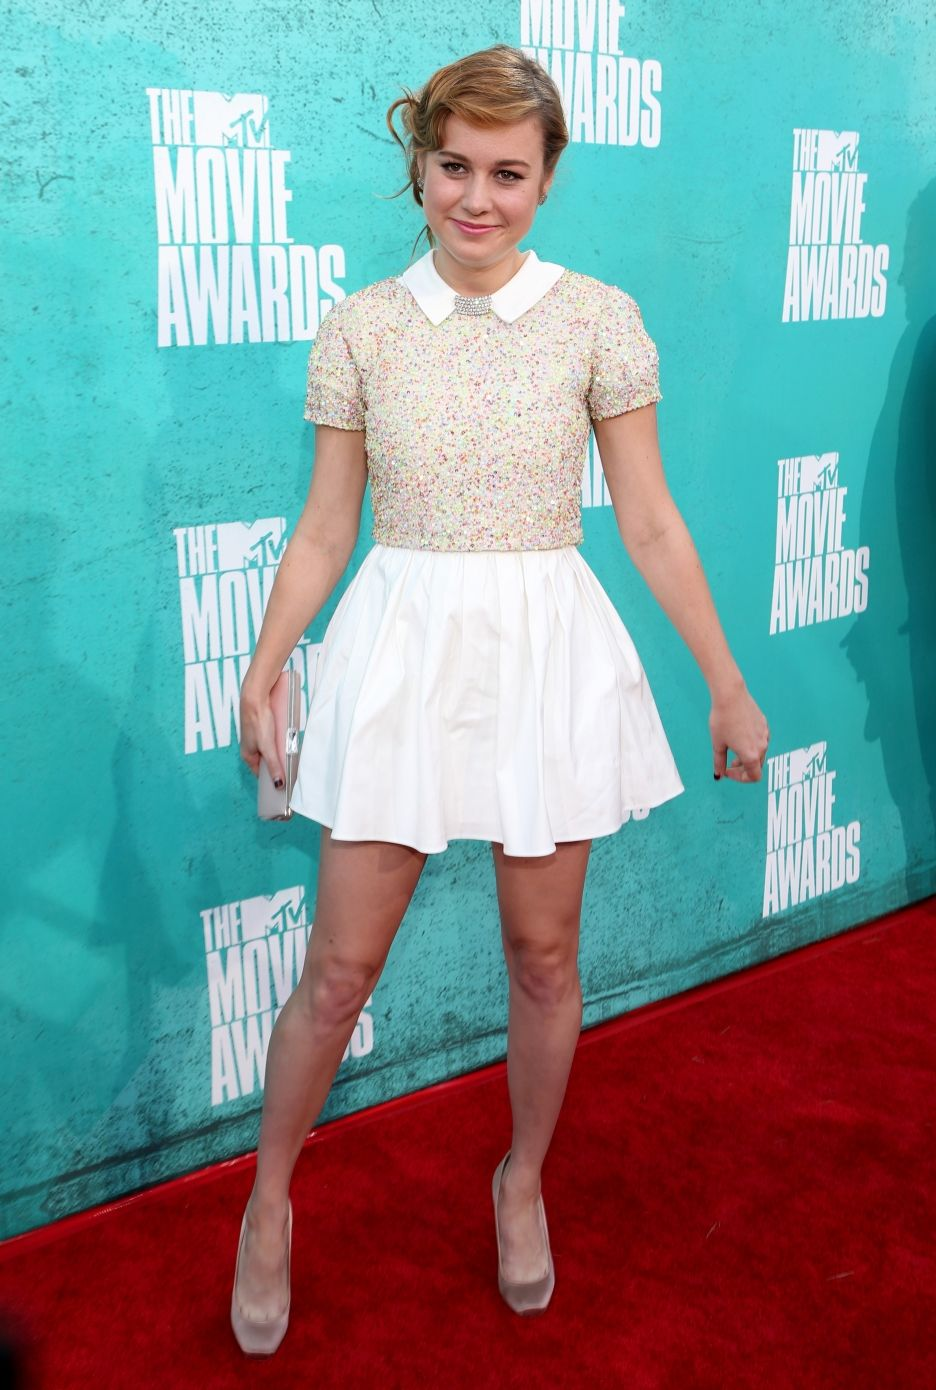 Healthy Celeb - Celebrity Height, Weight, Fitness, Fashion ...